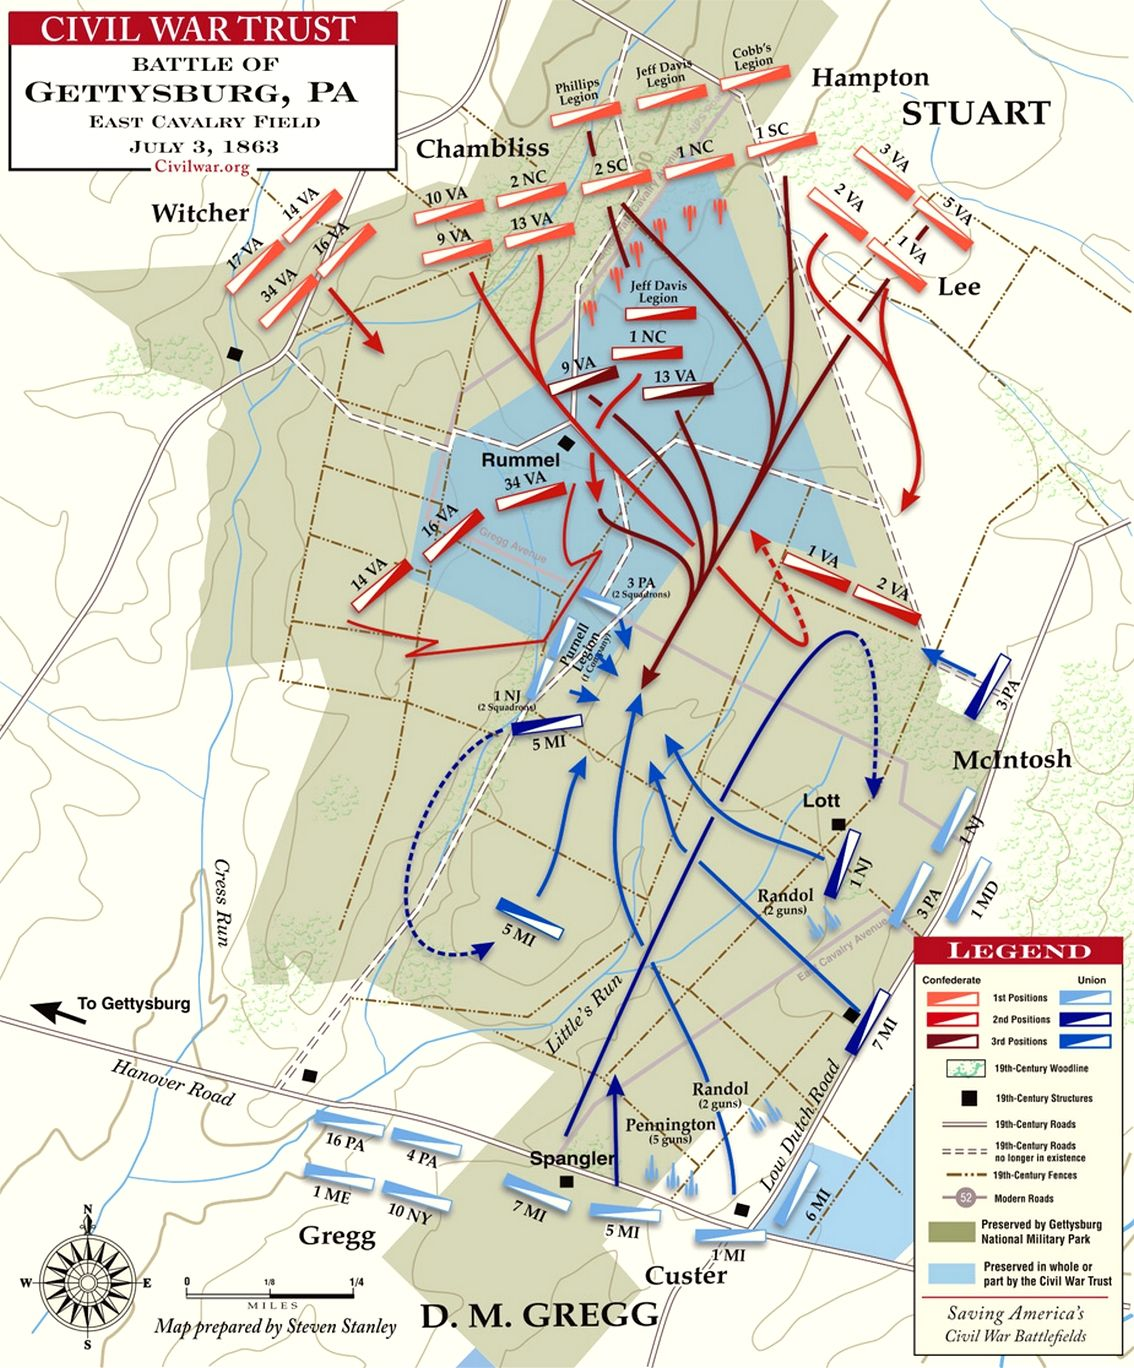 why was the battle of gettysburg Want the facts about the battle of gettysburg, the turning point in the american civil war learn about the battle, its outcome, and its significance.